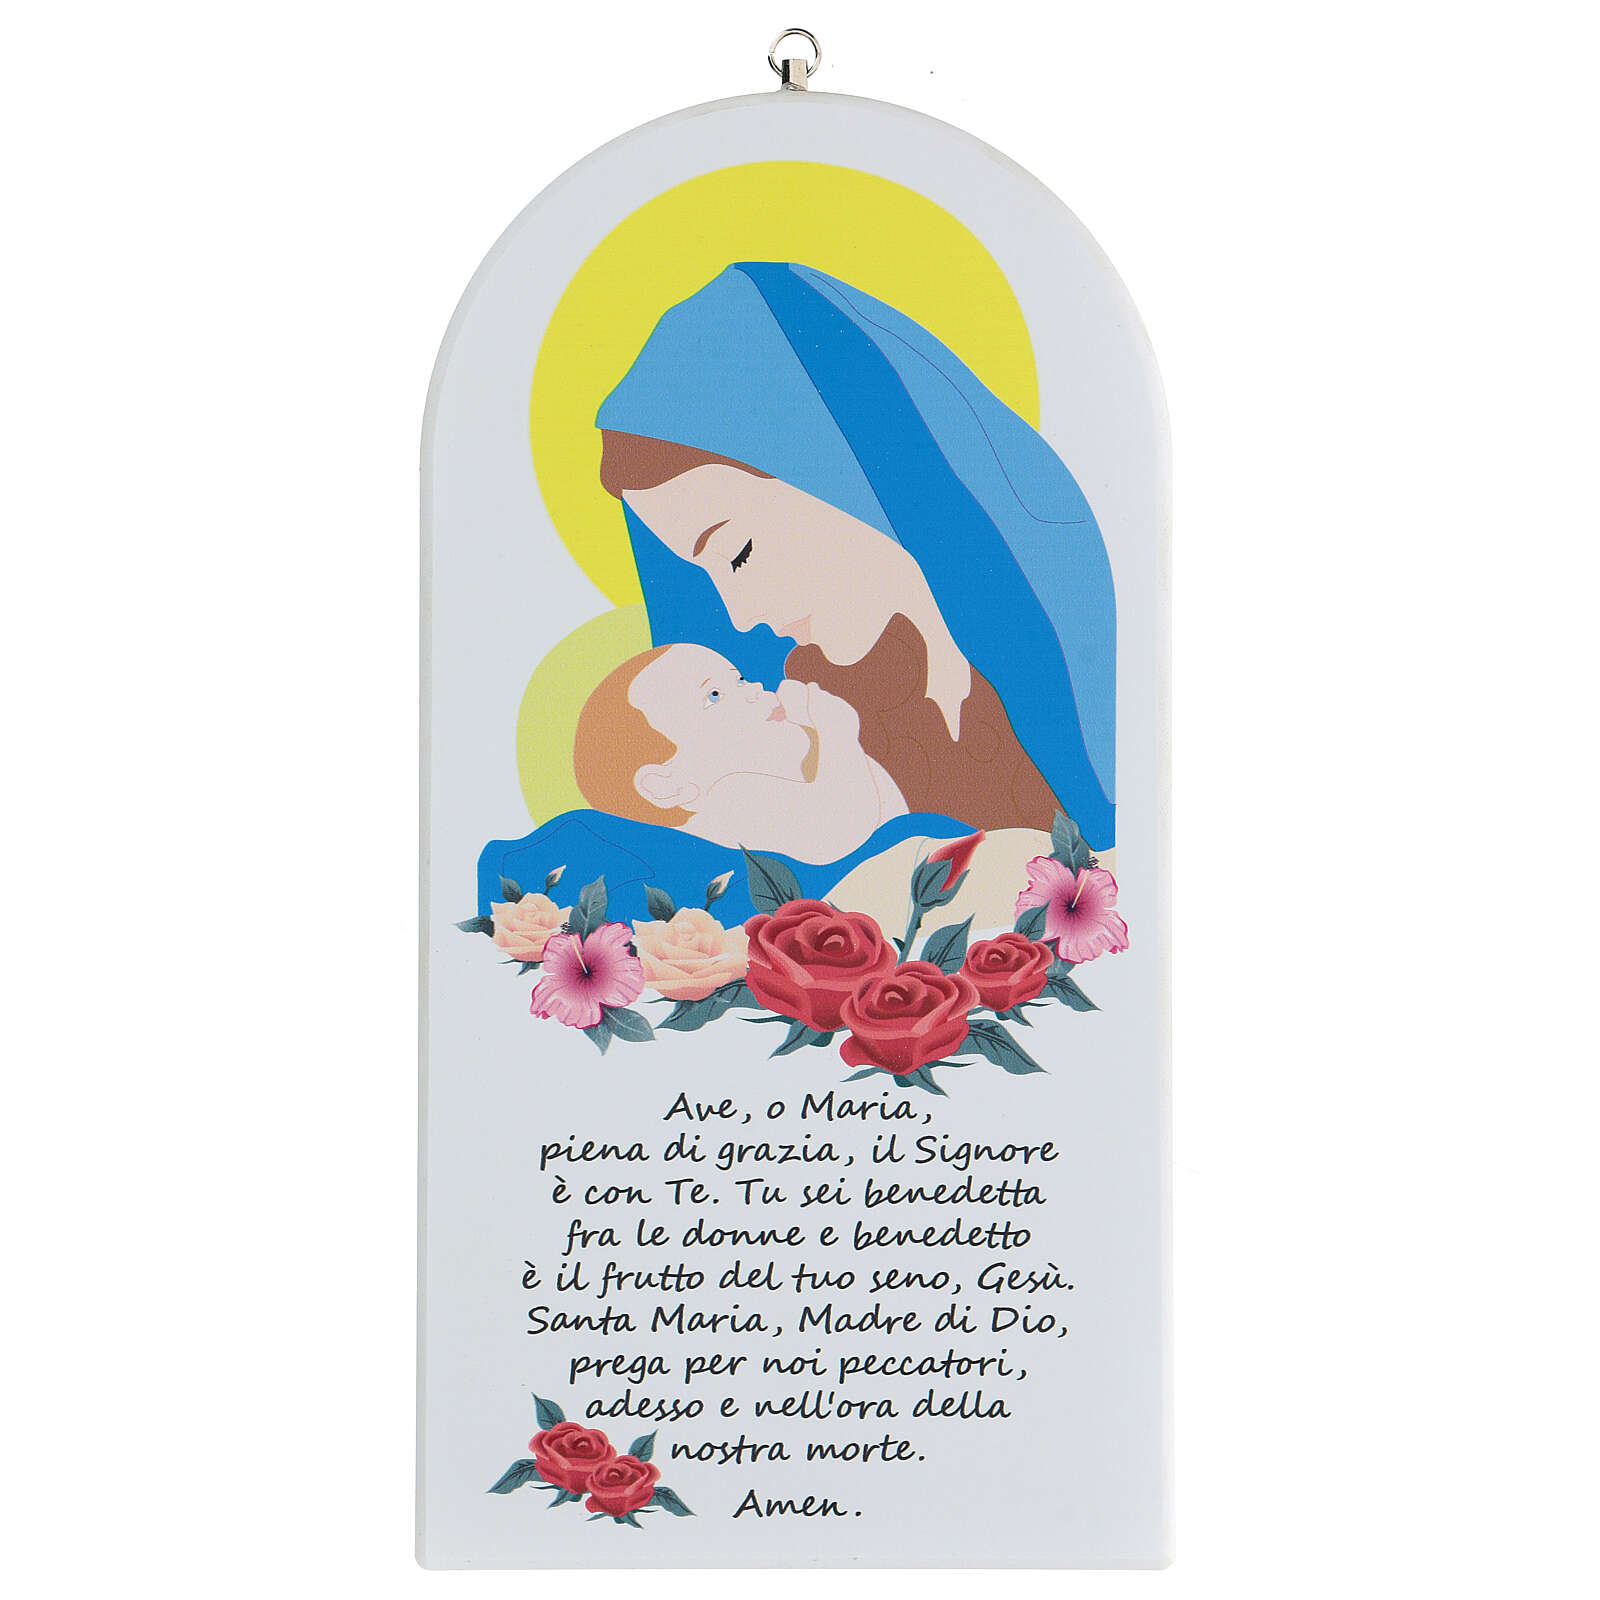 Hail Mary icon with cartoon style prayer 3